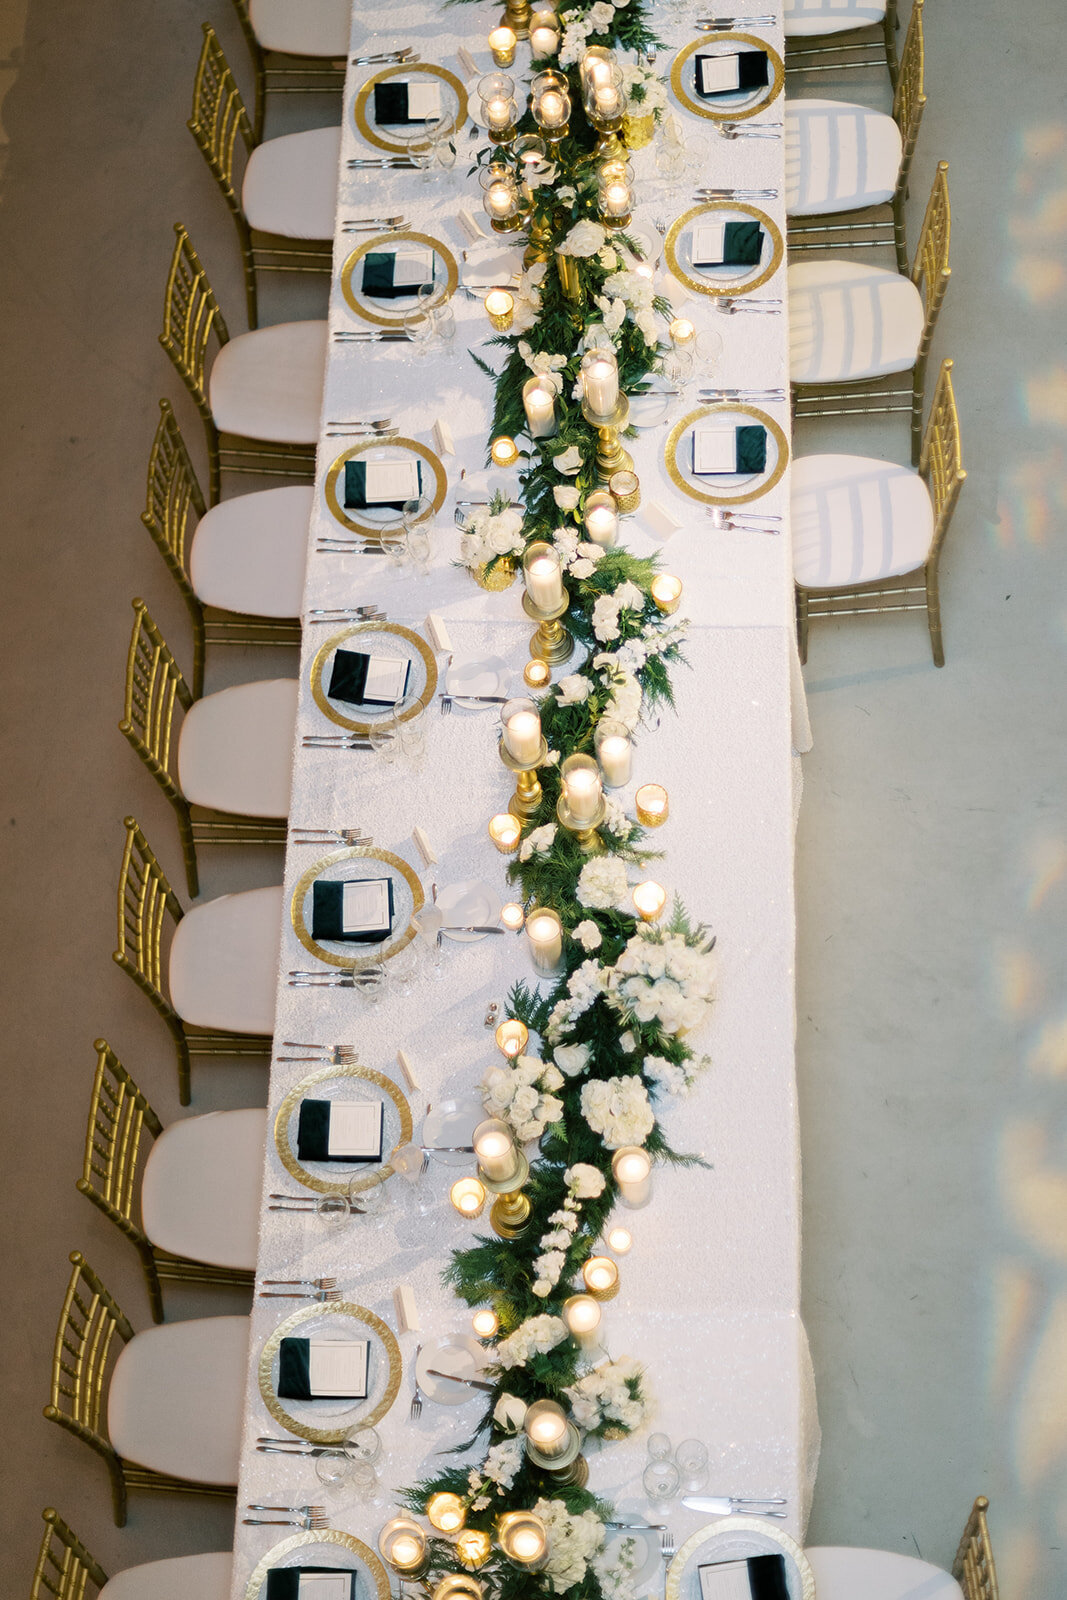 25-Venue-Six10-Wedding-garland